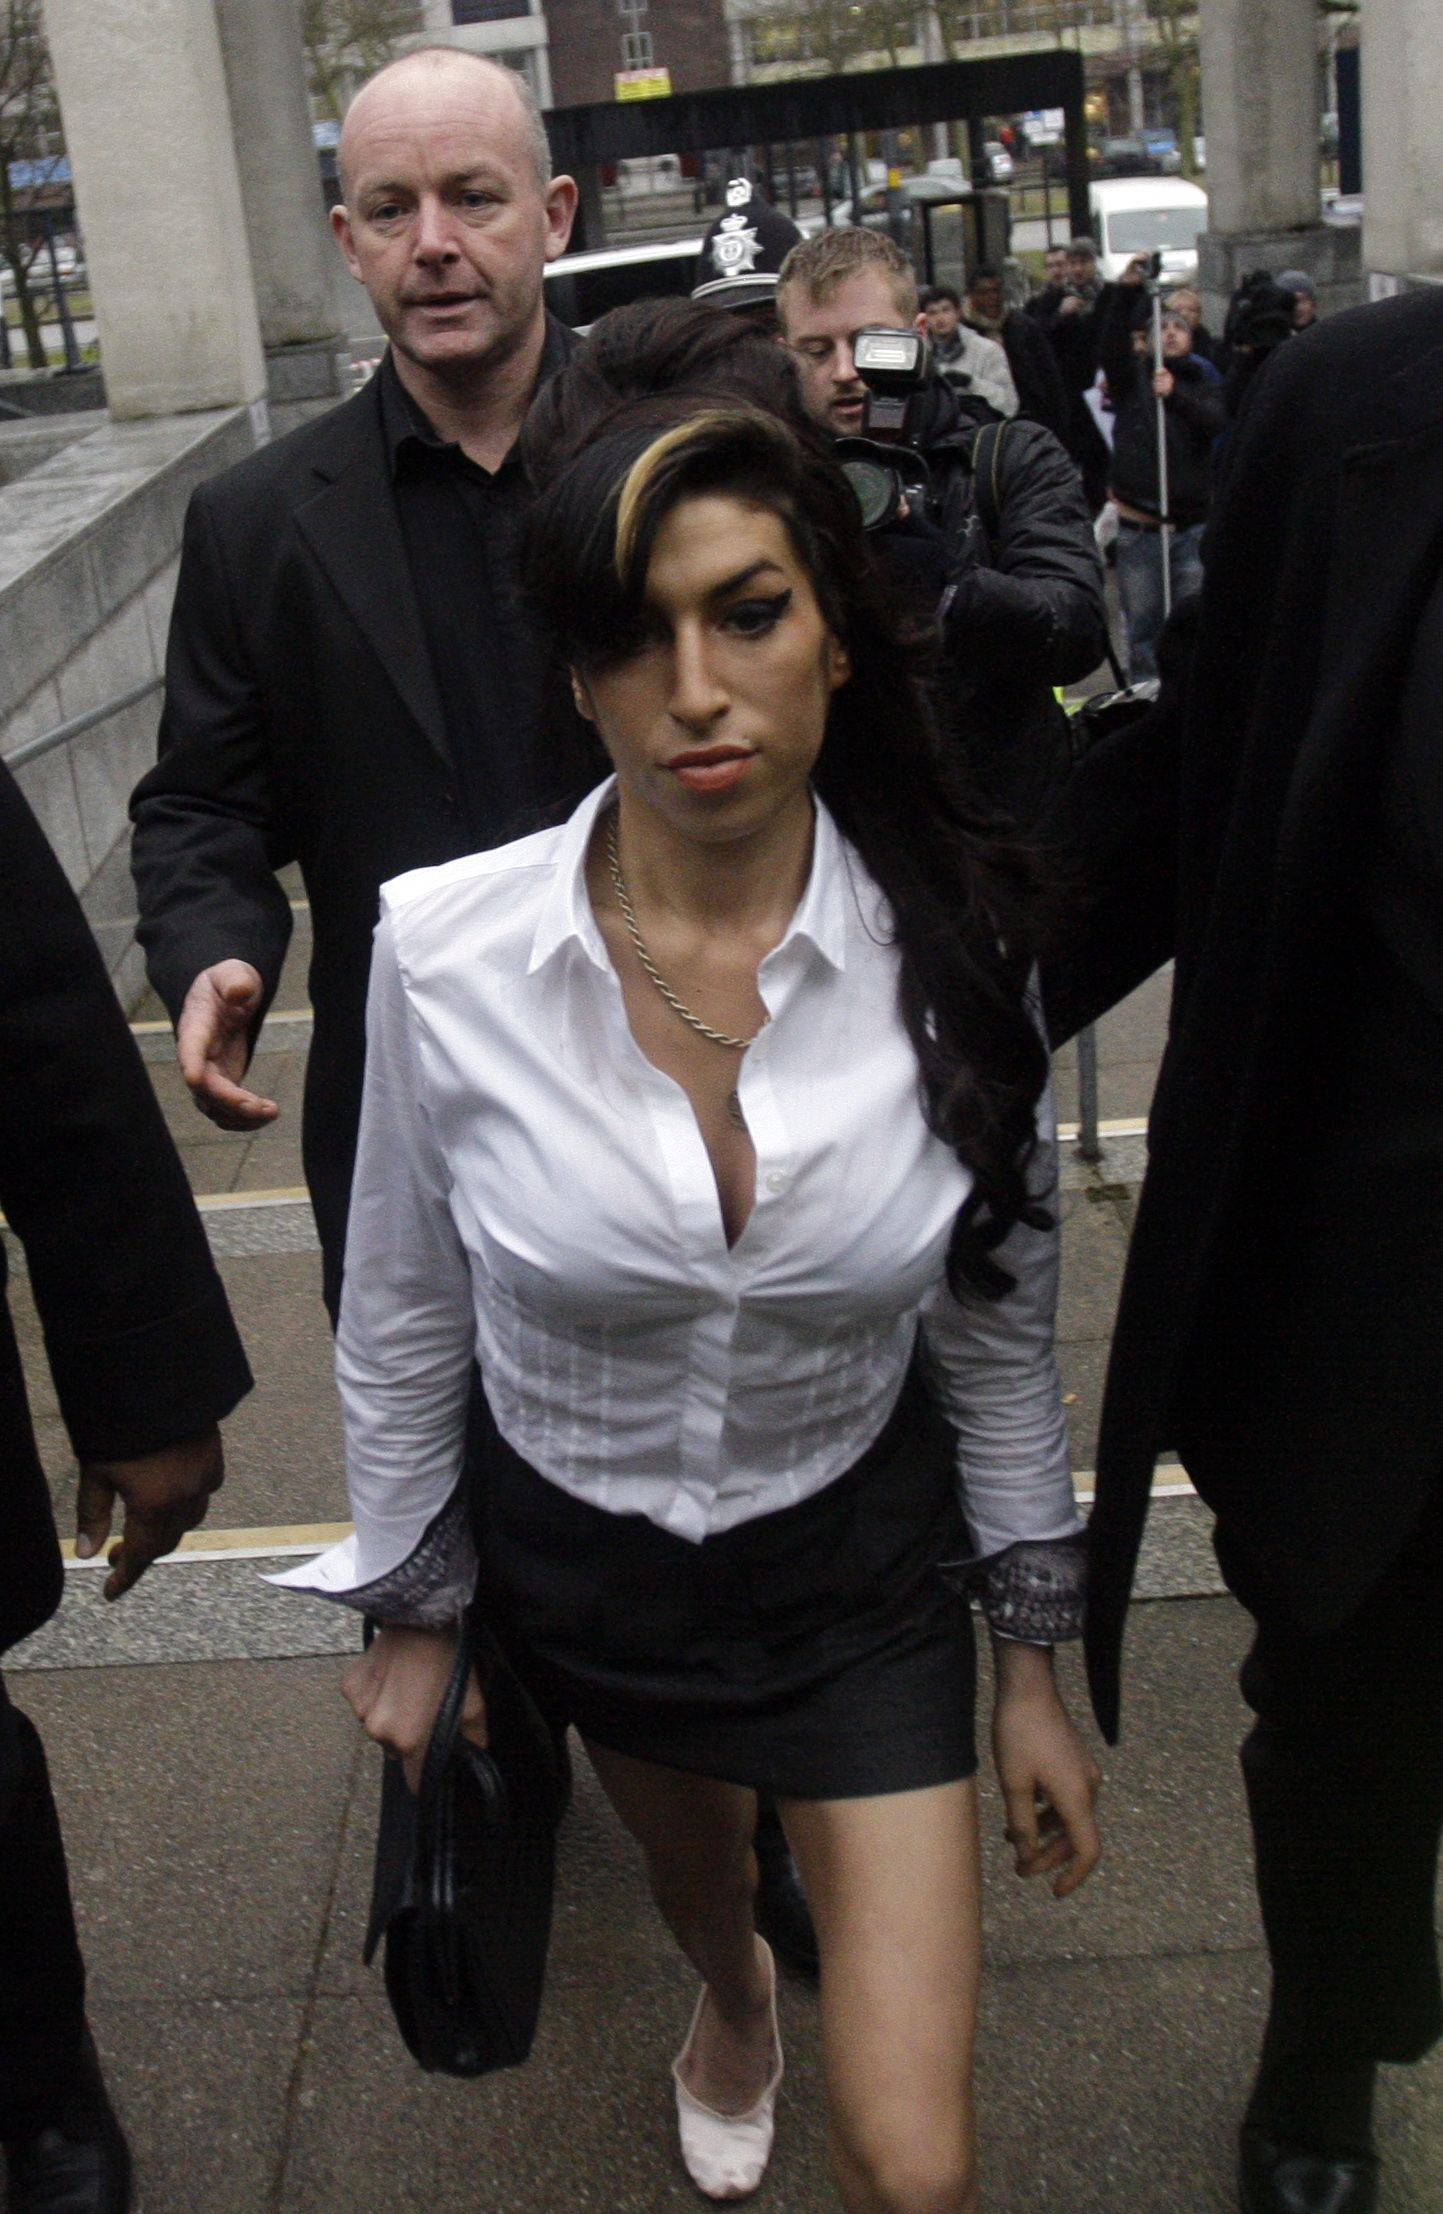 "British singer Amy Winehouse arrives at Magistrates Court in Milton Keynes, England, Wednesday, Jan. 20, 2010. Winehouse pleaded guilty Wednesday to assaulting a theater manager at a family Christmas show. The 26-year-old admitted charges of disorder and common assault during a Dec. 19 performance of the pantomime, or variety show, ""Cinderella."" (AP Photo/Matt Dunham)"